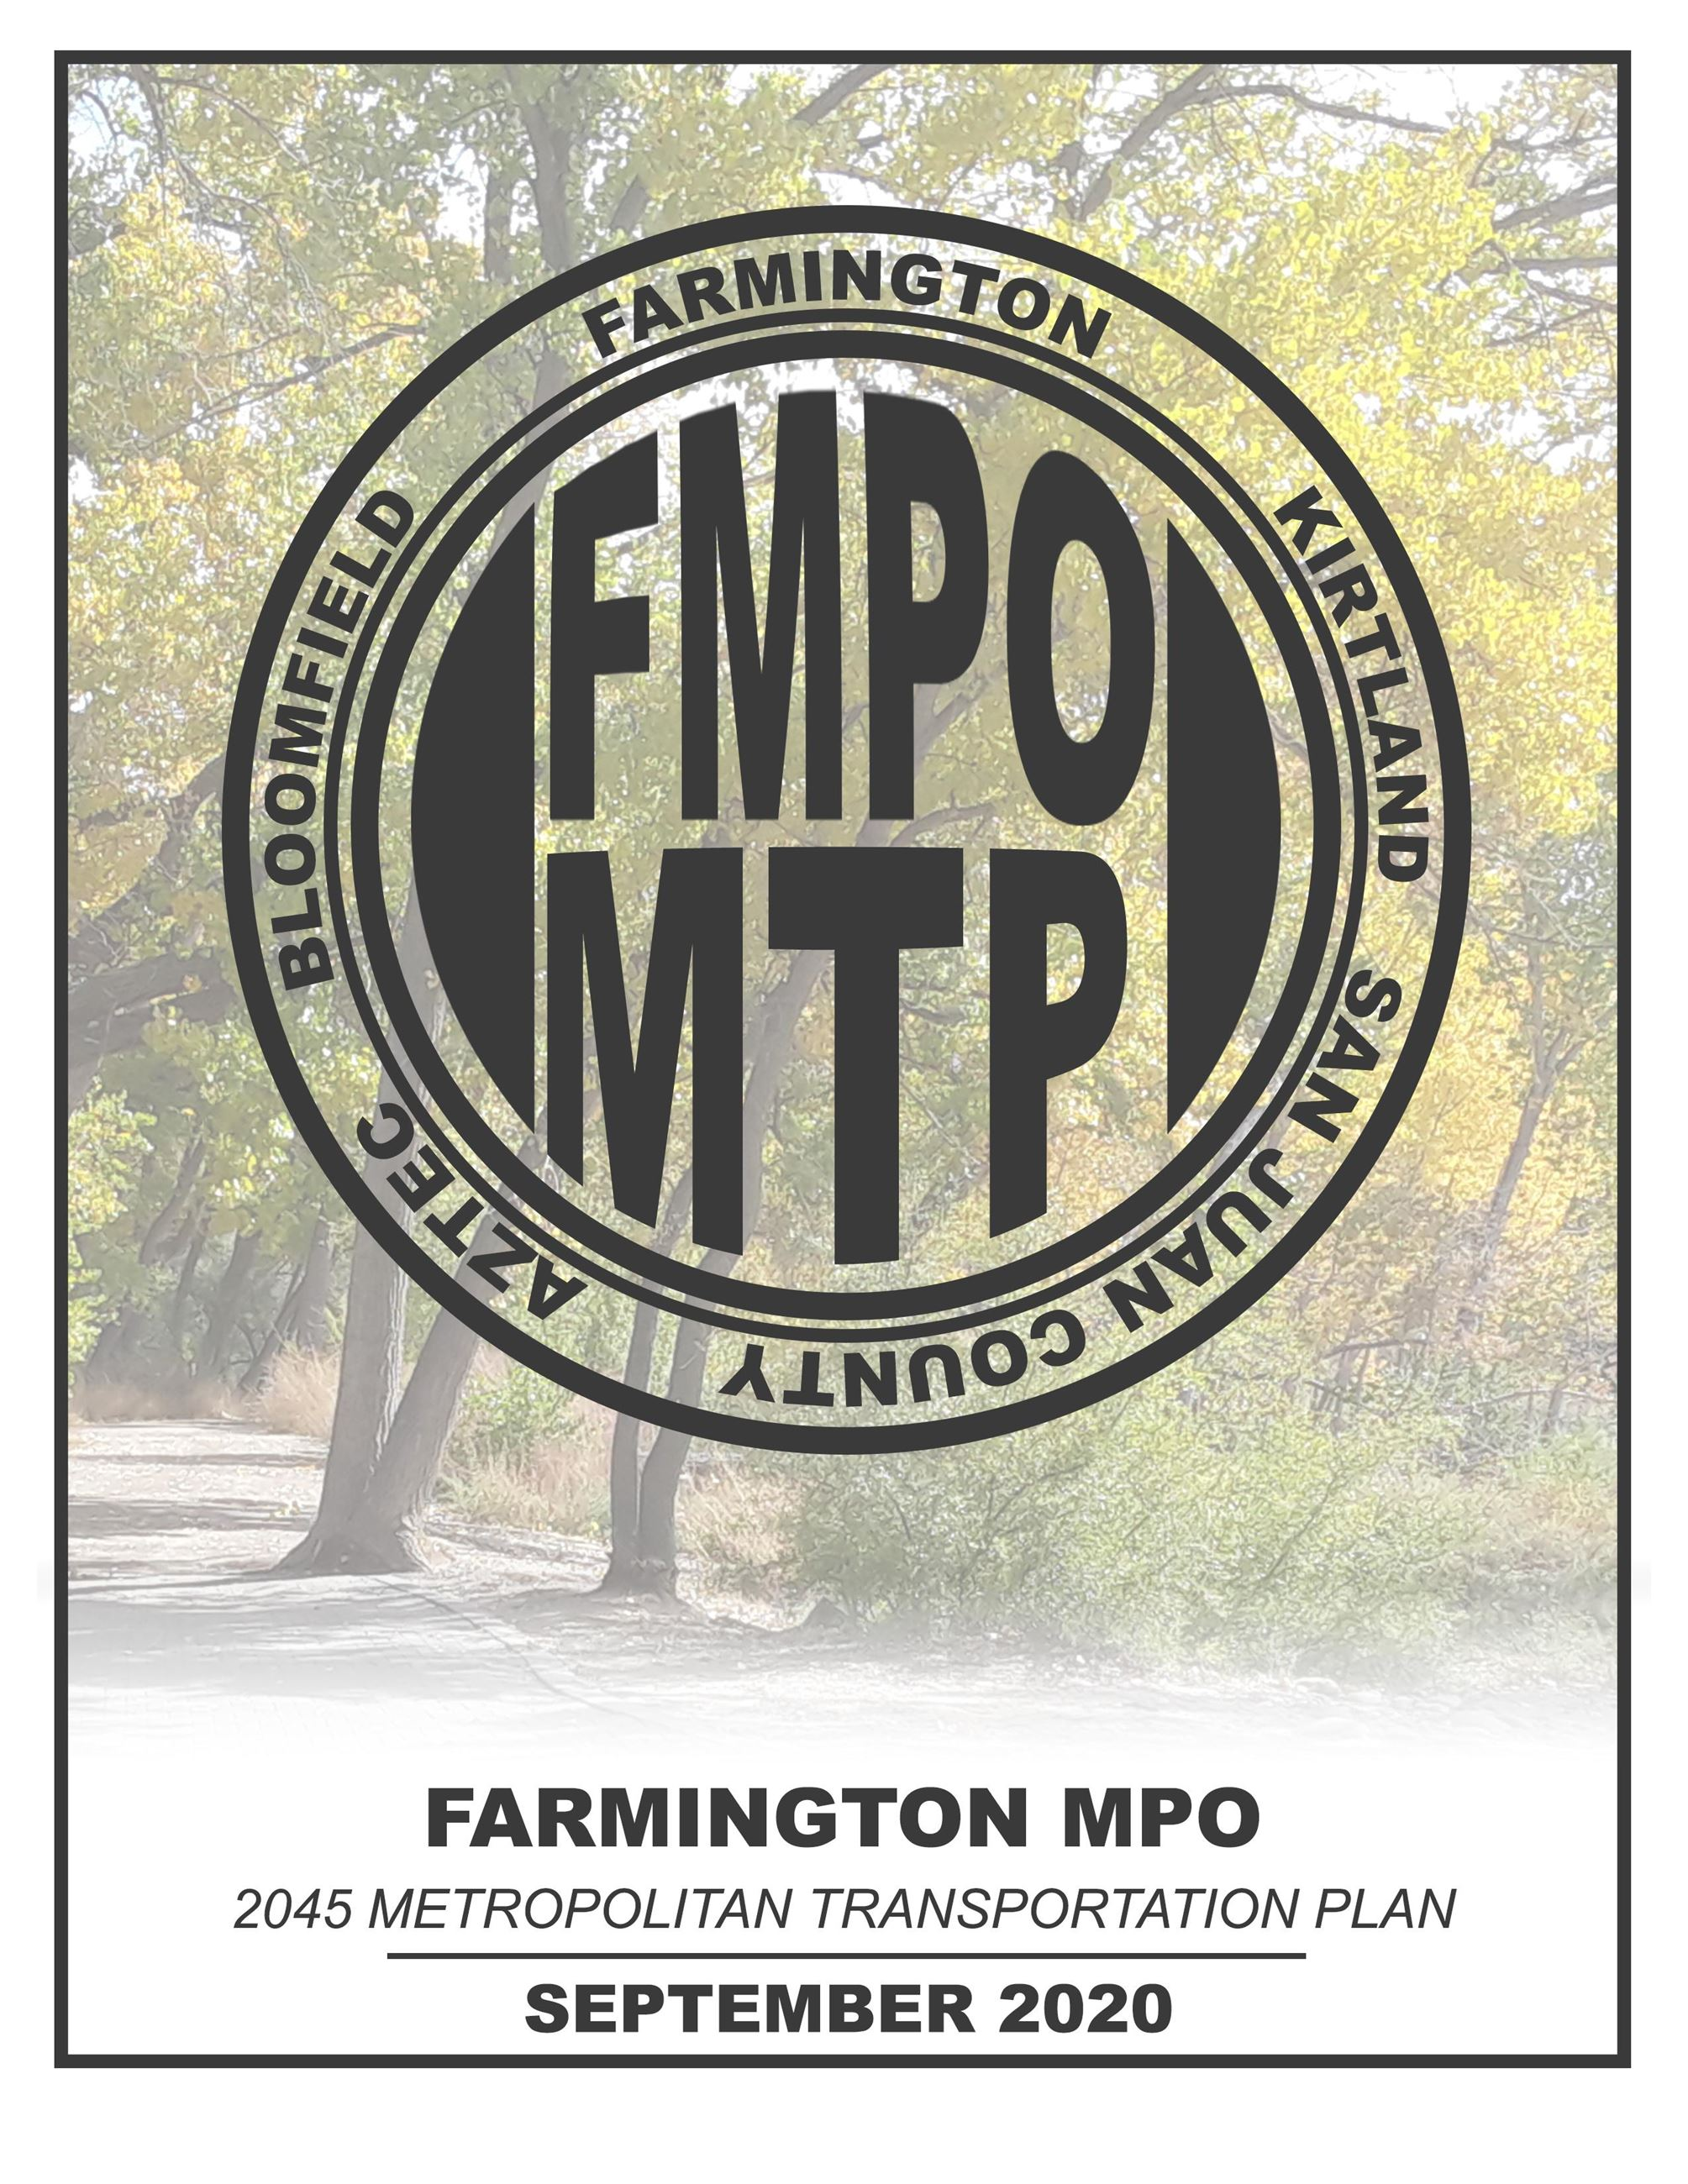 FMPO 2045 MTP Cover Page Final Opens in new window